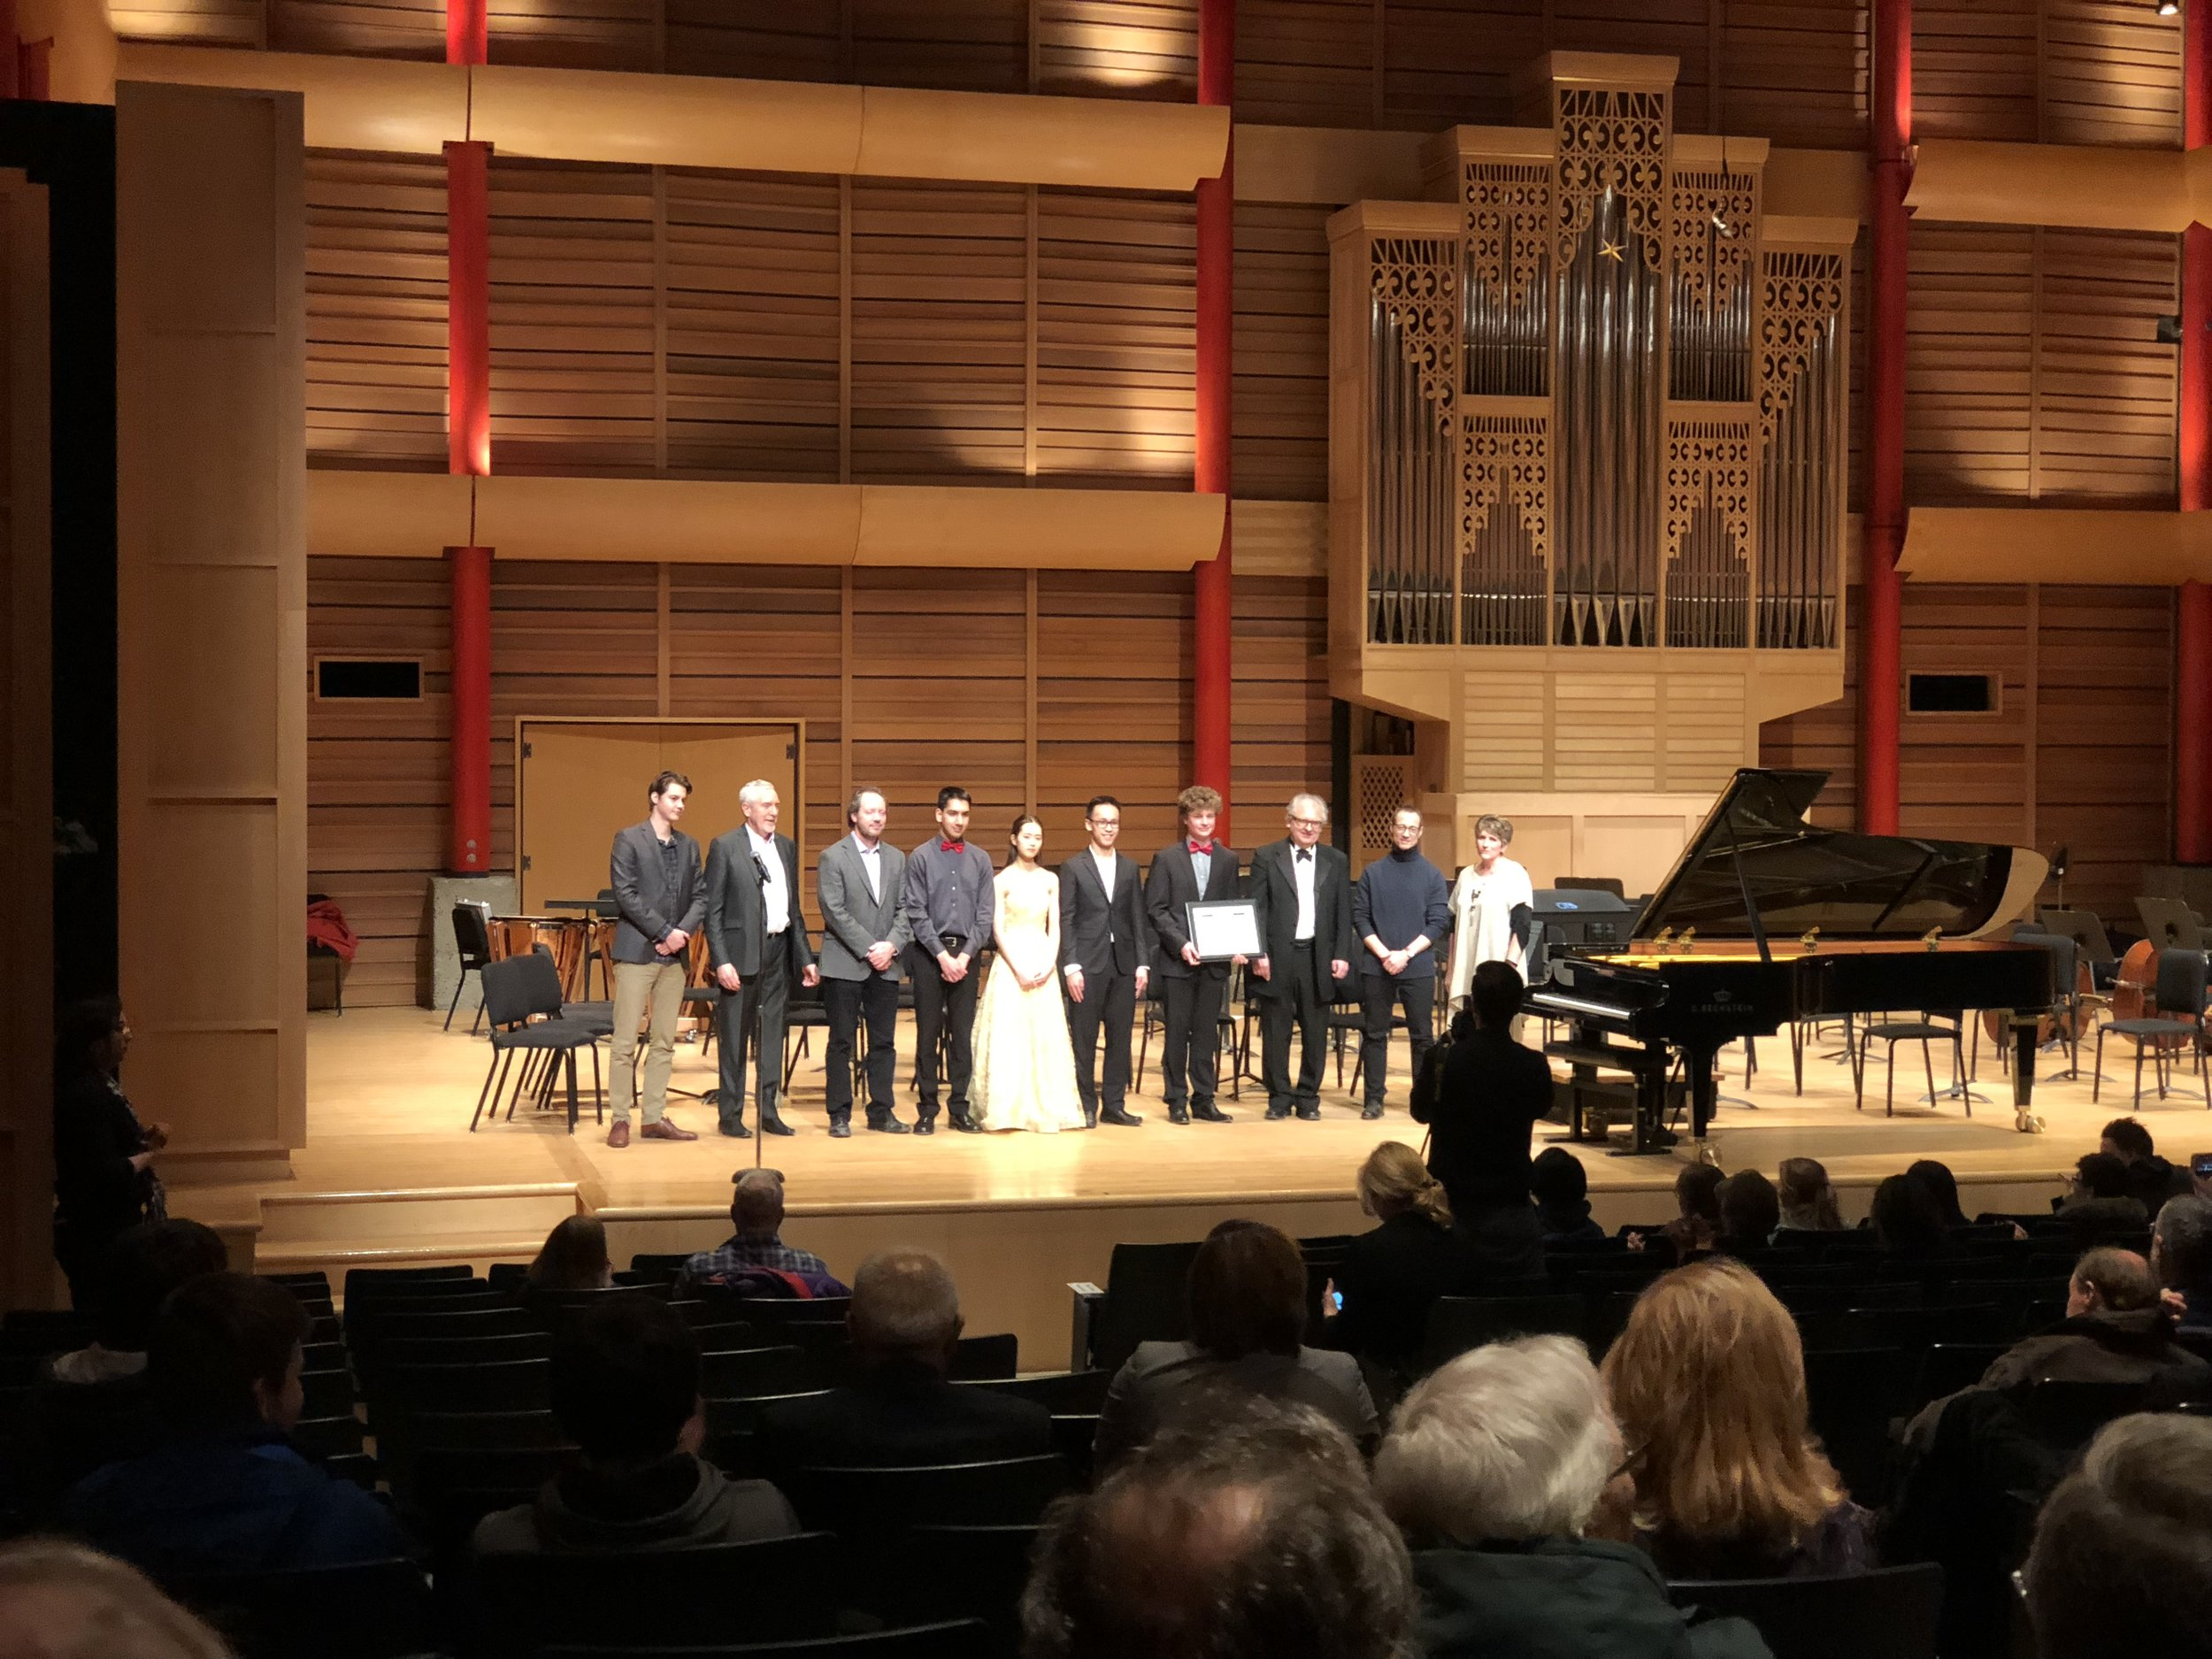 From left to right: Karl Hirzer (Resident Conductor of the CPO and Jury), Paul Dornian (President & CEO of the CPO and Jury), Brad Mahon (Director, MRU Conservatory), Daniel Dastoor (violin), Sua Kwoun (cello), Cameron Wong (oboe), Daniel Szefer (piano), Edmond Agopian (Professor, Conductor and Violinist), Bruce Barton (SCPA Professor & Director), Joelle Welling (SCPA Chair & Senior Instructor).